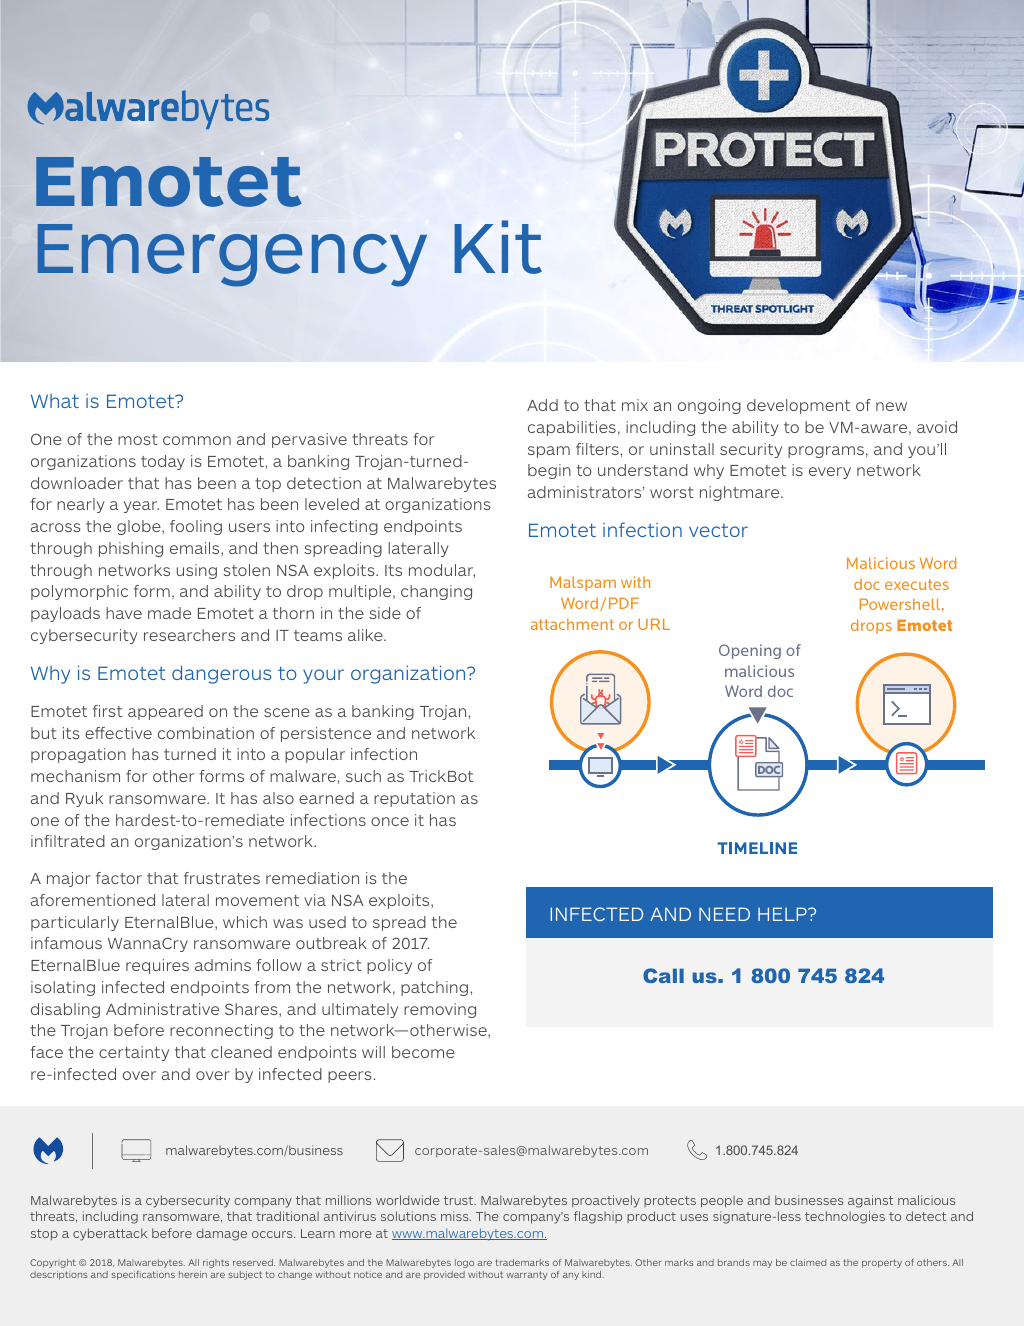 Emergency Kit - Emotet